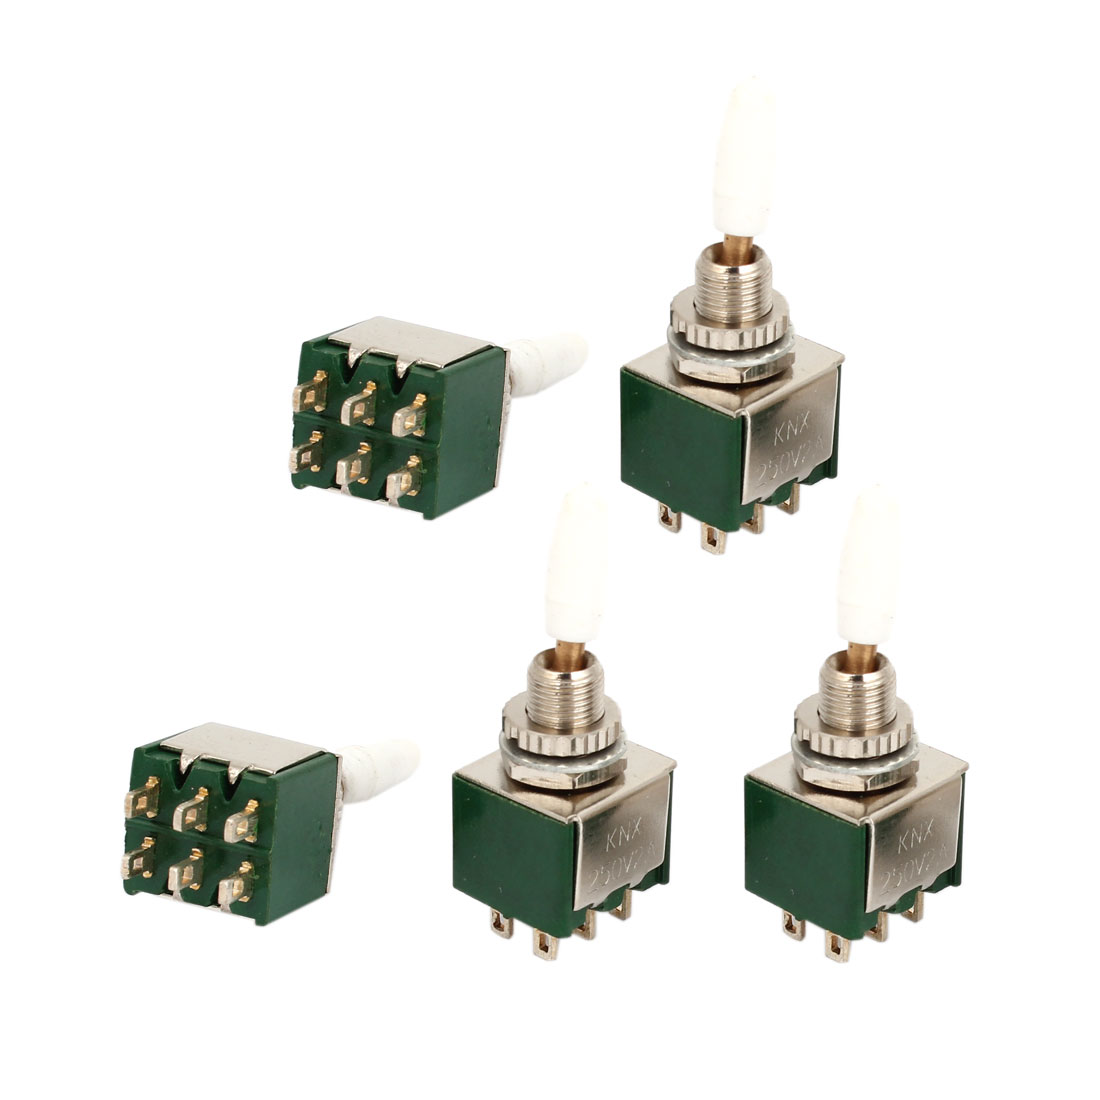 5 Pcs AC 250V 2A 6Pin DPDT ON/ON Self Lock 2-Position Toggle Switch